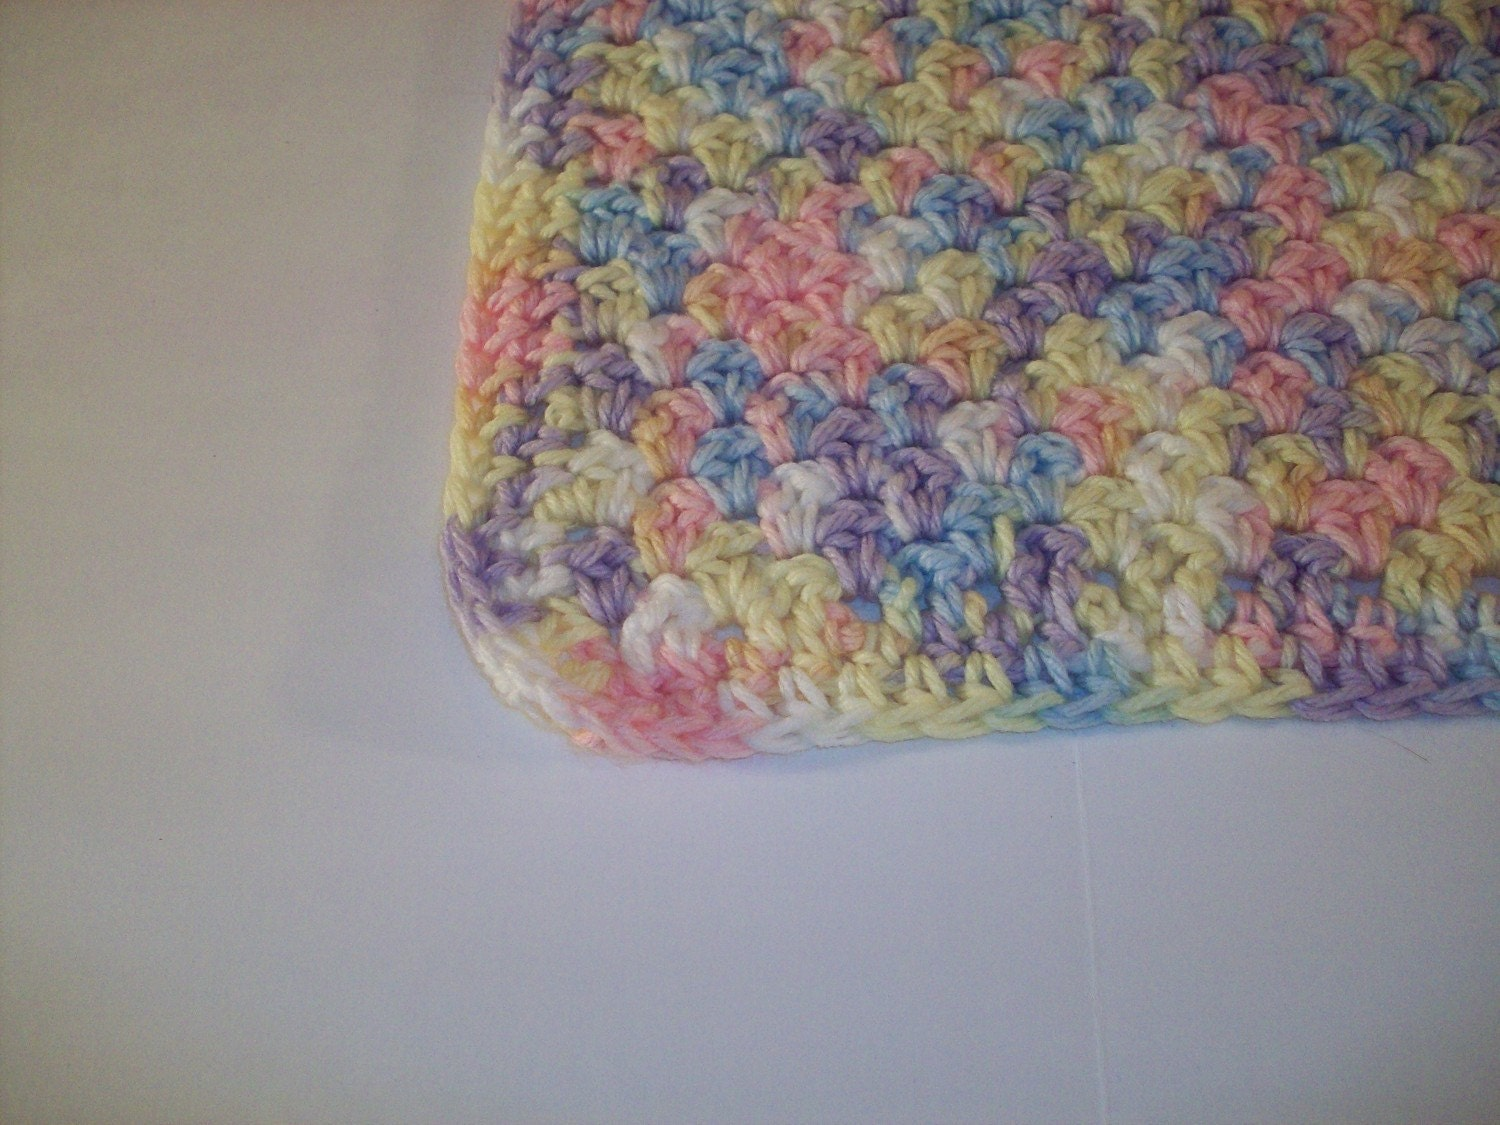 Crochet Patterns Variegated Yarn : crocheted in double crochet shell blanket with variegated yarn